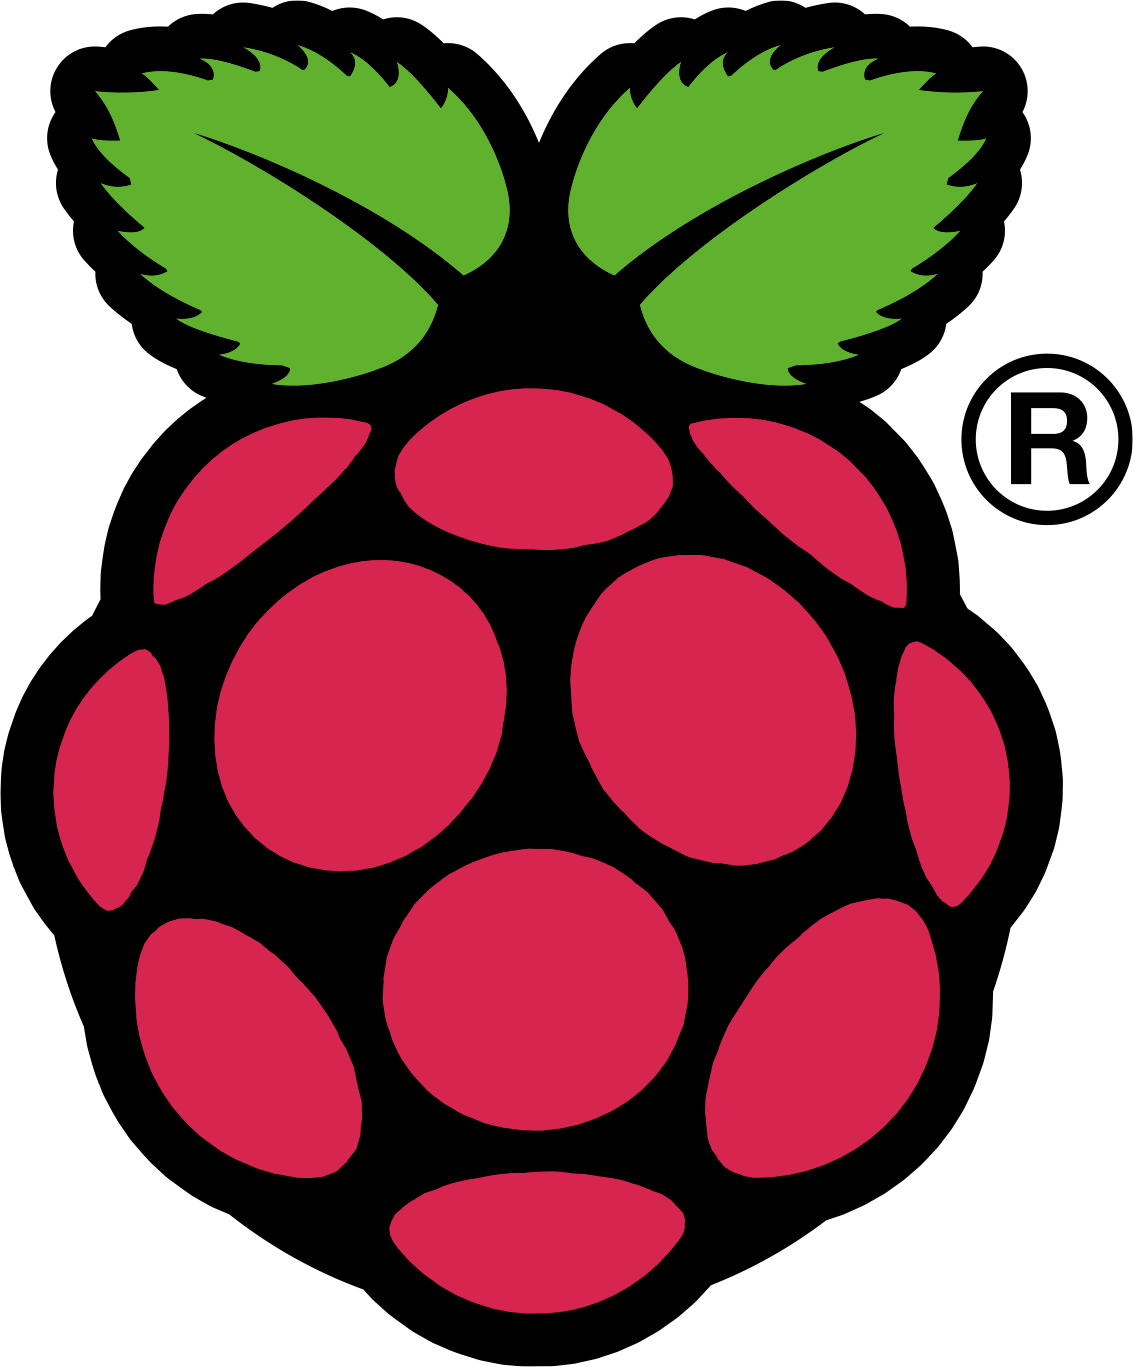 Raspberry Pi: Introducción